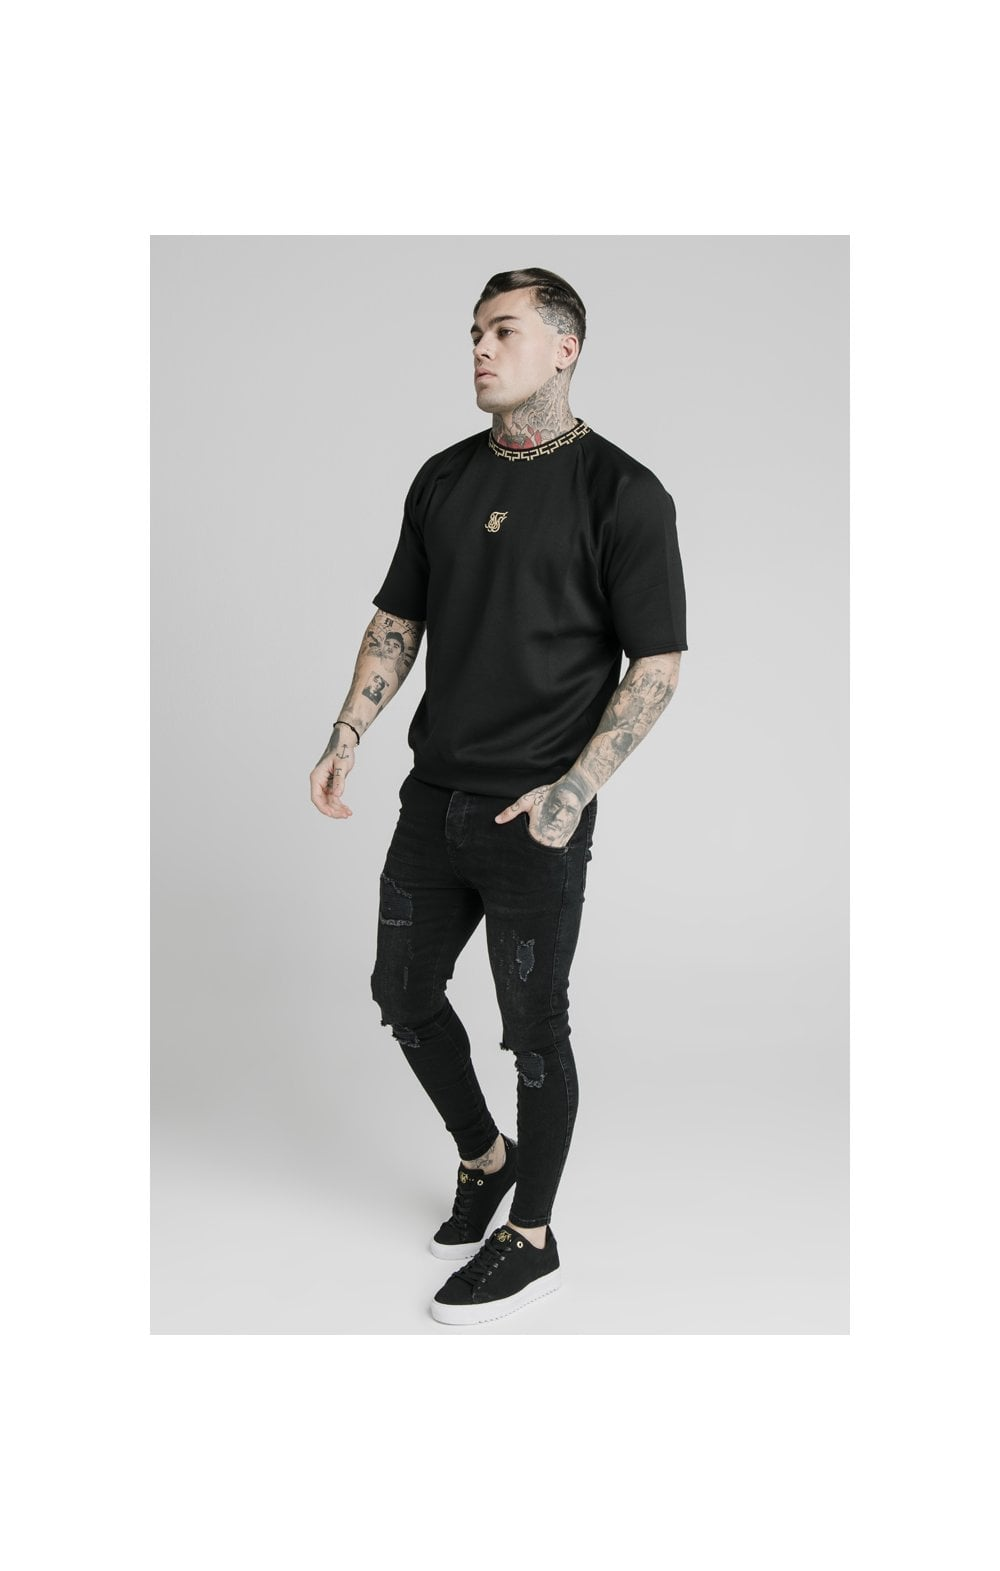 SikSilk S/S Chain Rib Raglan Sweater - Black (3)